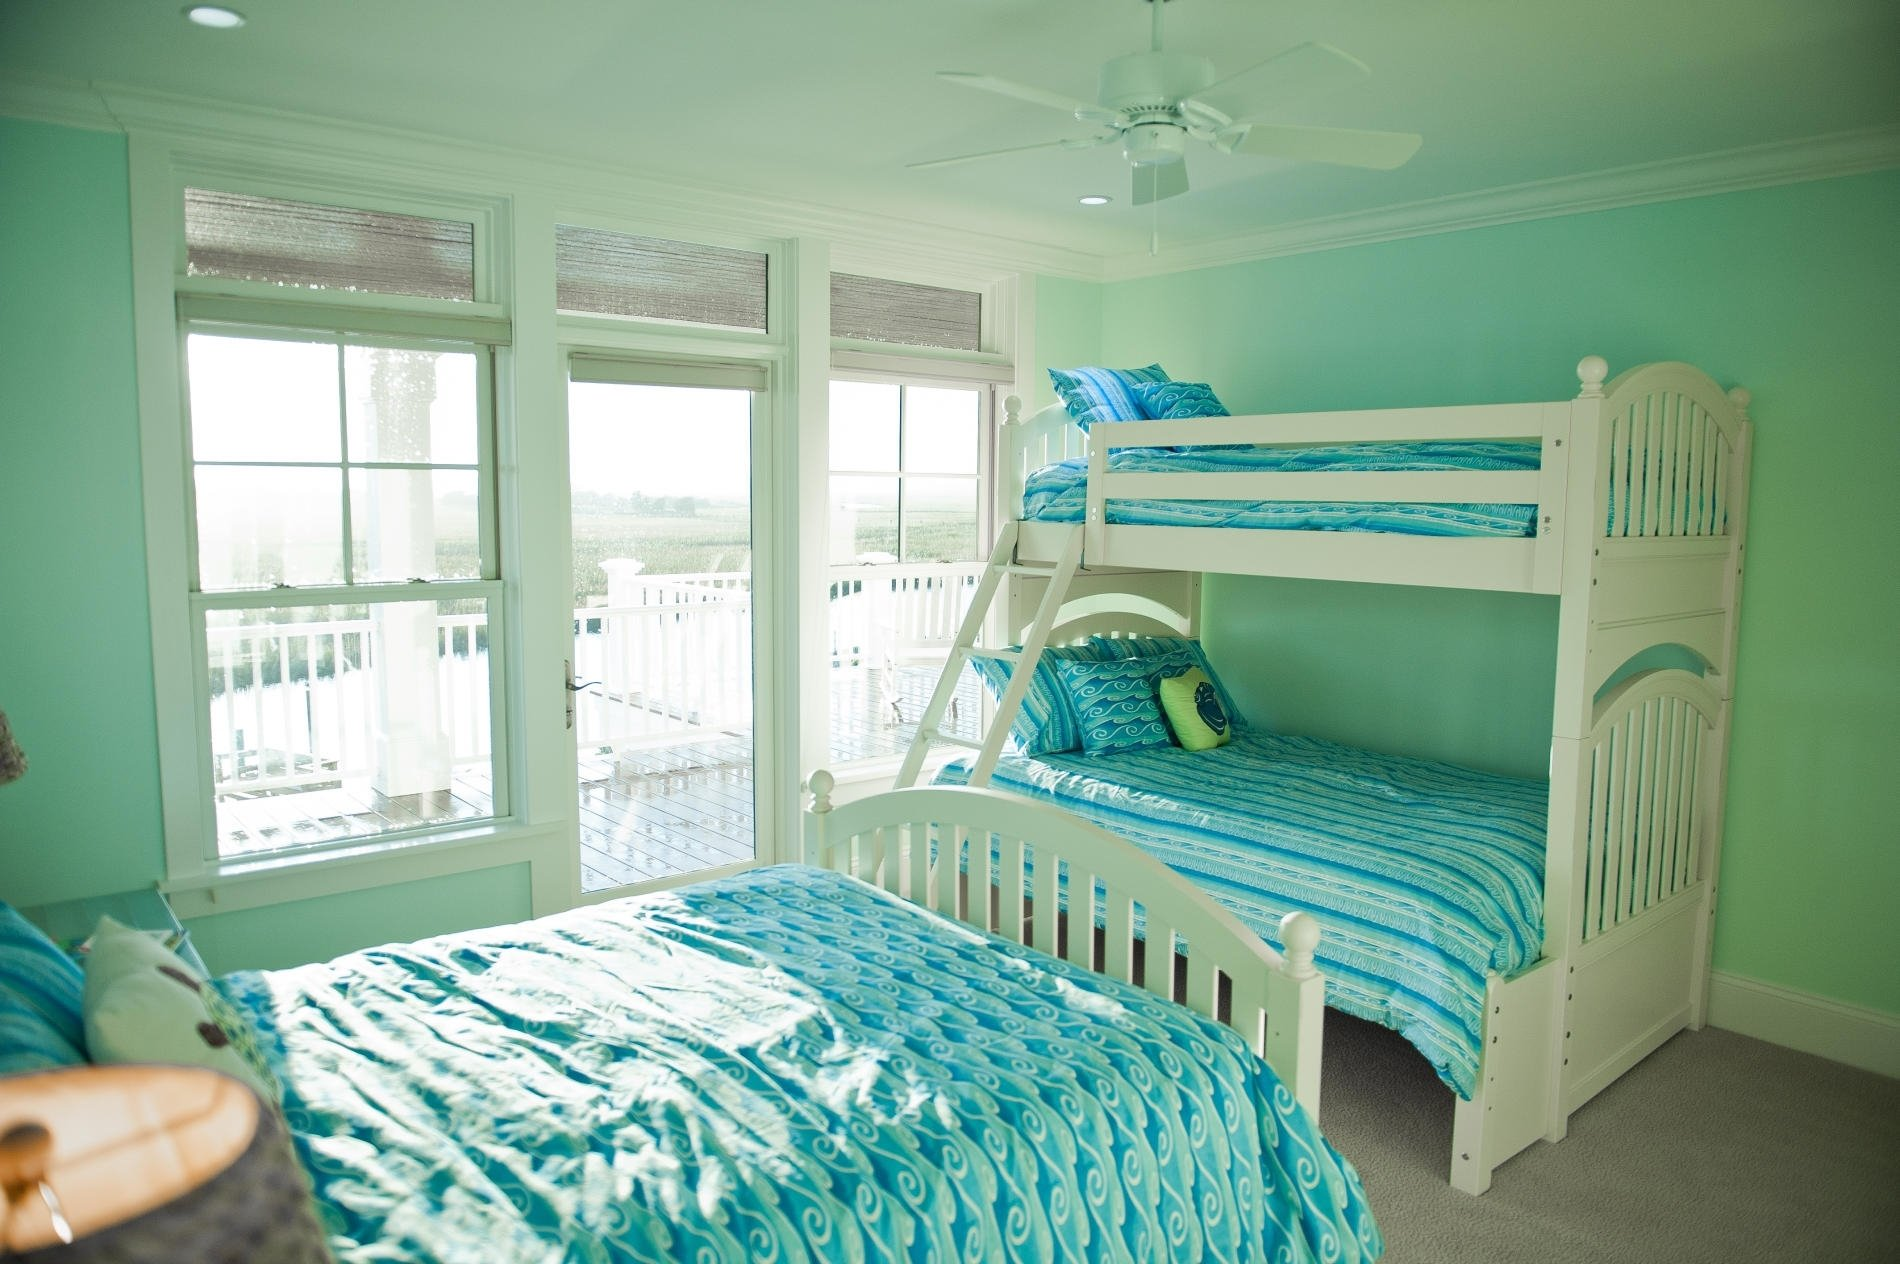 10 Attractive Blue And Green Bedroom Ideas blue green bedroom paint e280a2 bedroom ideas 2021